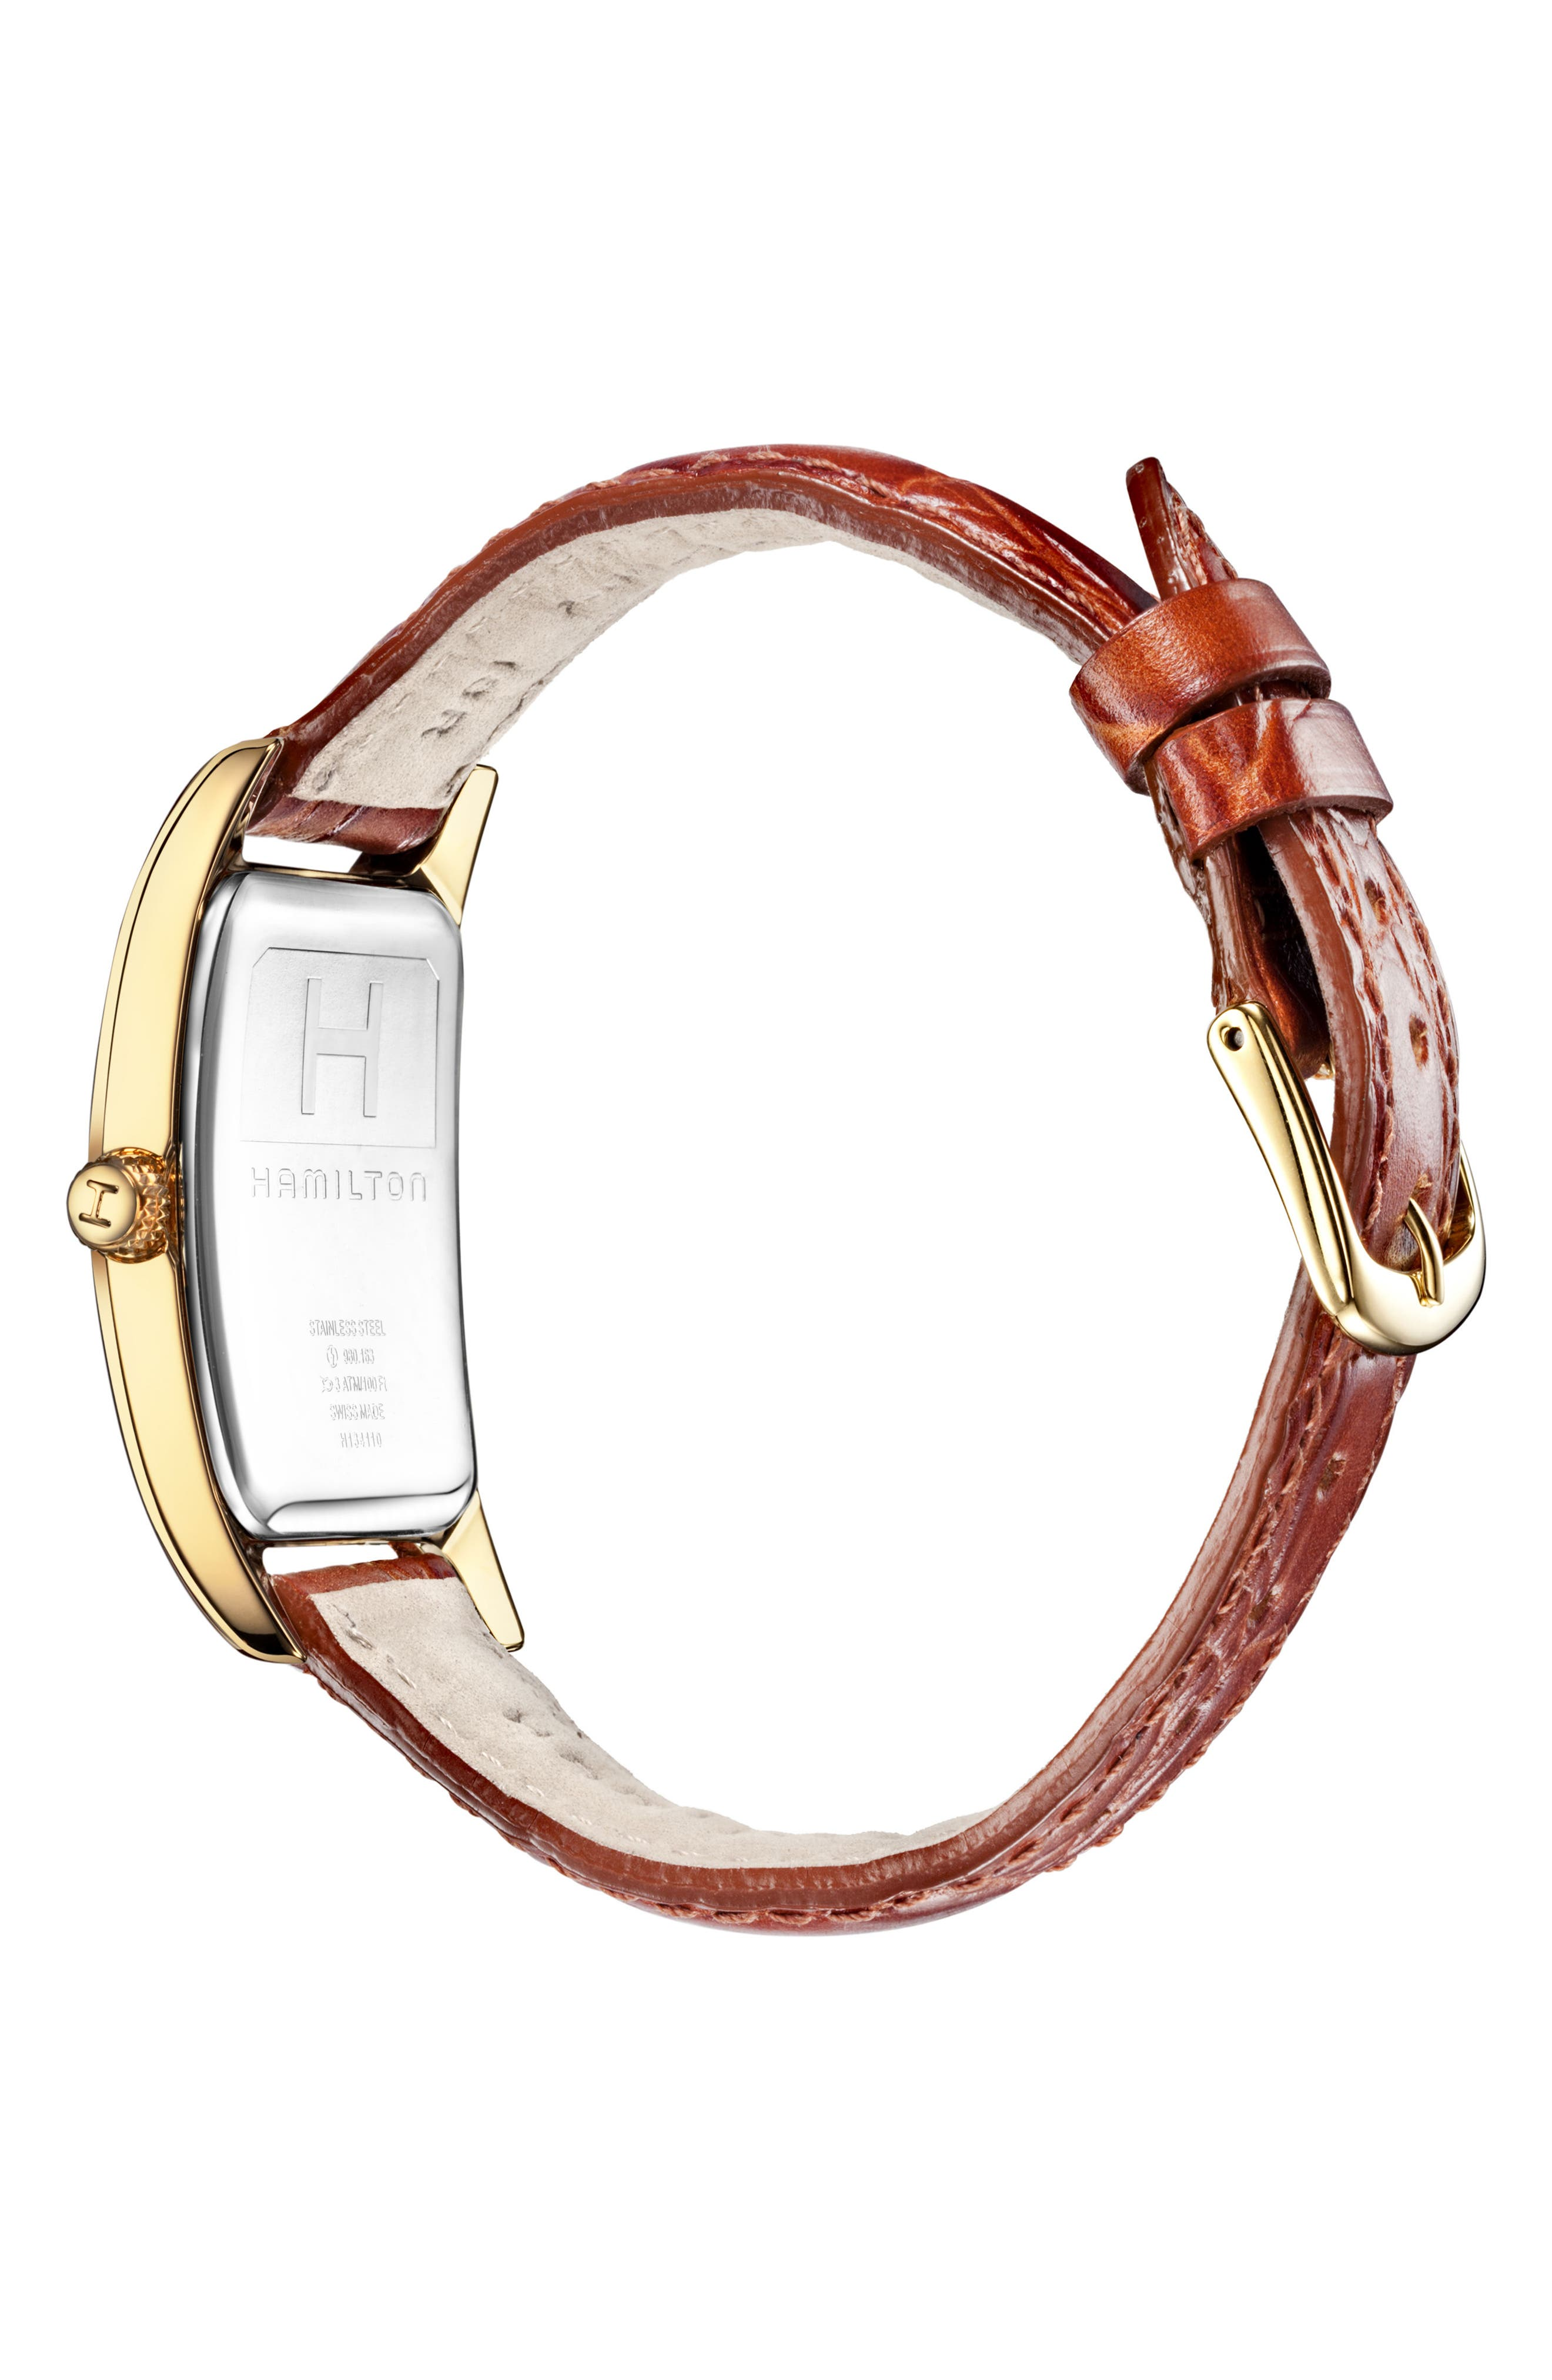 HAMILTON, American Classic Boulton Leather Strap Watch, 27mm x 31mm, Alternate thumbnail 2, color, BROWN/ WHITE/ GOLD